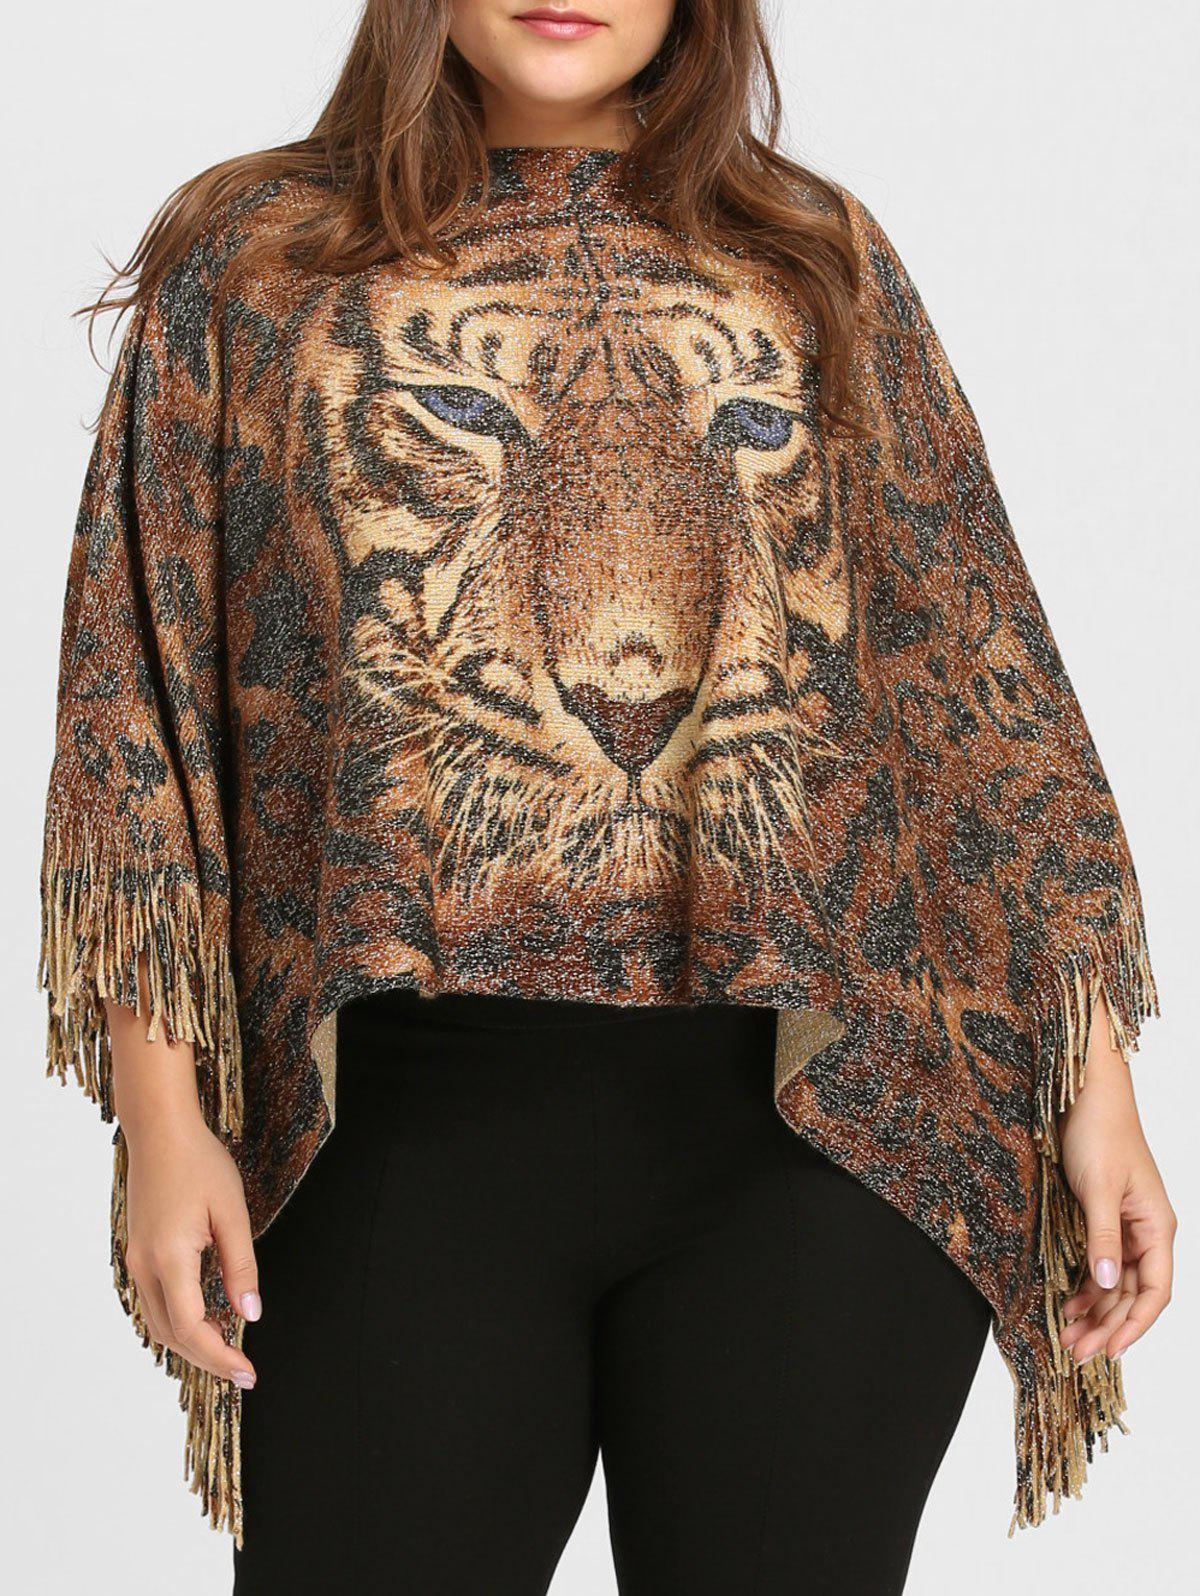 Tiger Printed Glitter Fringed Plus Size Poncho SweaterWOMEN<br><br>Size: ONE SIZE; Color: LIGHT BROWN; Type: Pullovers; Material: Polyester; Sleeve Length: Three Quarter; Collar: Round Neck; Style: Fashion; Season: Fall,Winter; Pattern Type: Animal,Print; Elasticity: Elastic; Weight: 0.4800kg; Package Contents: 1 x Sweater;